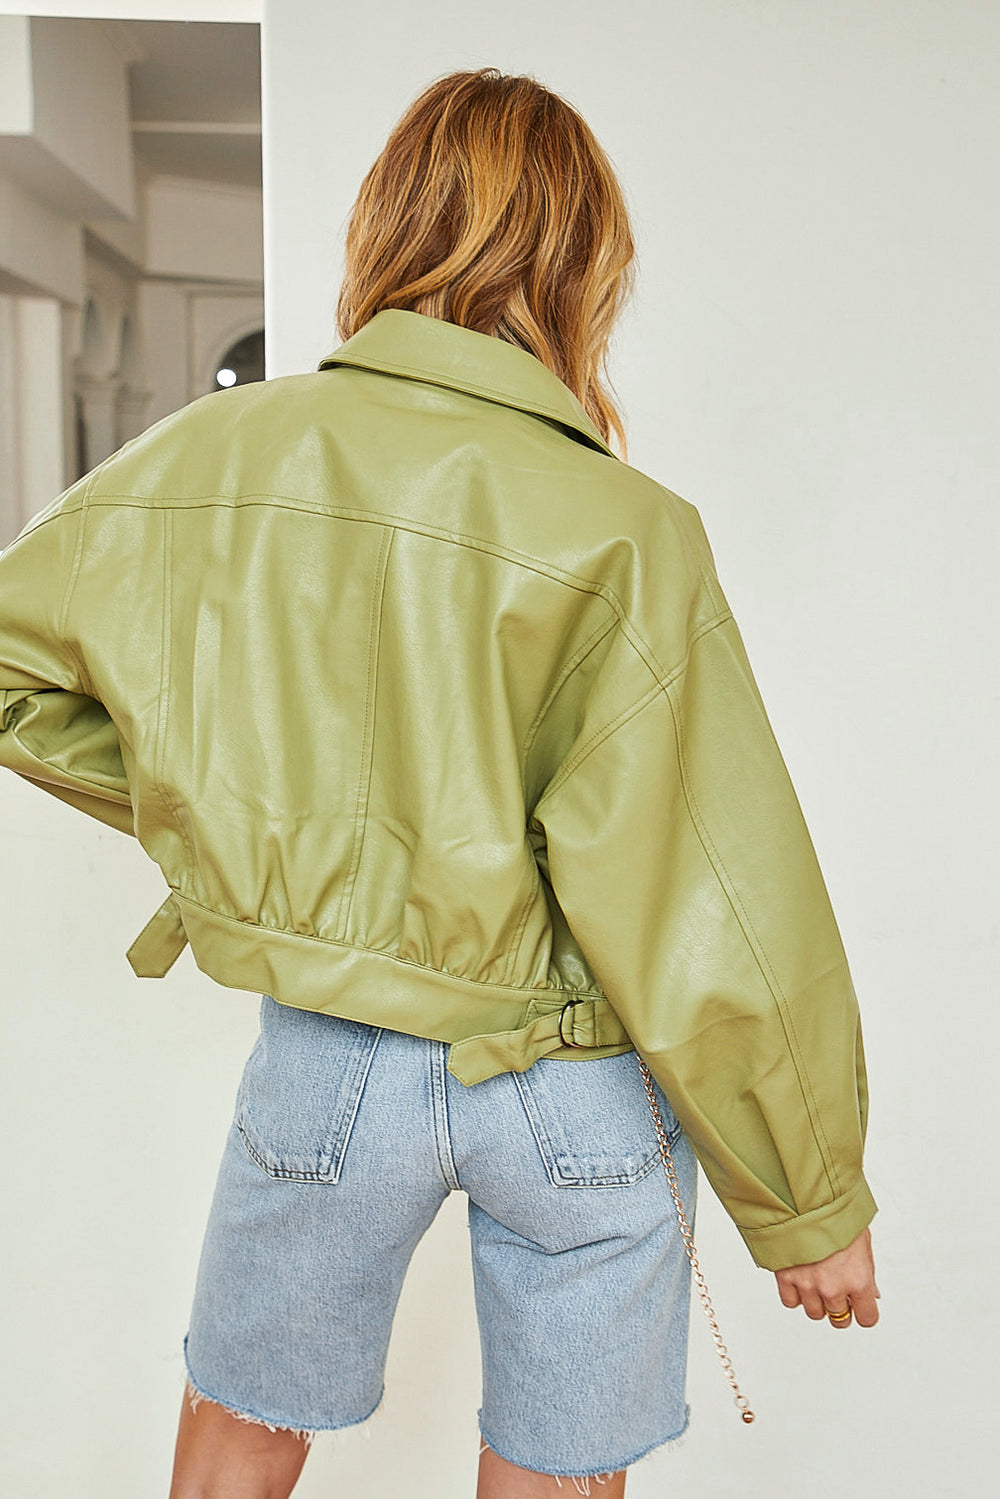 Miles Away Pistachio Vegan Leather Jacket